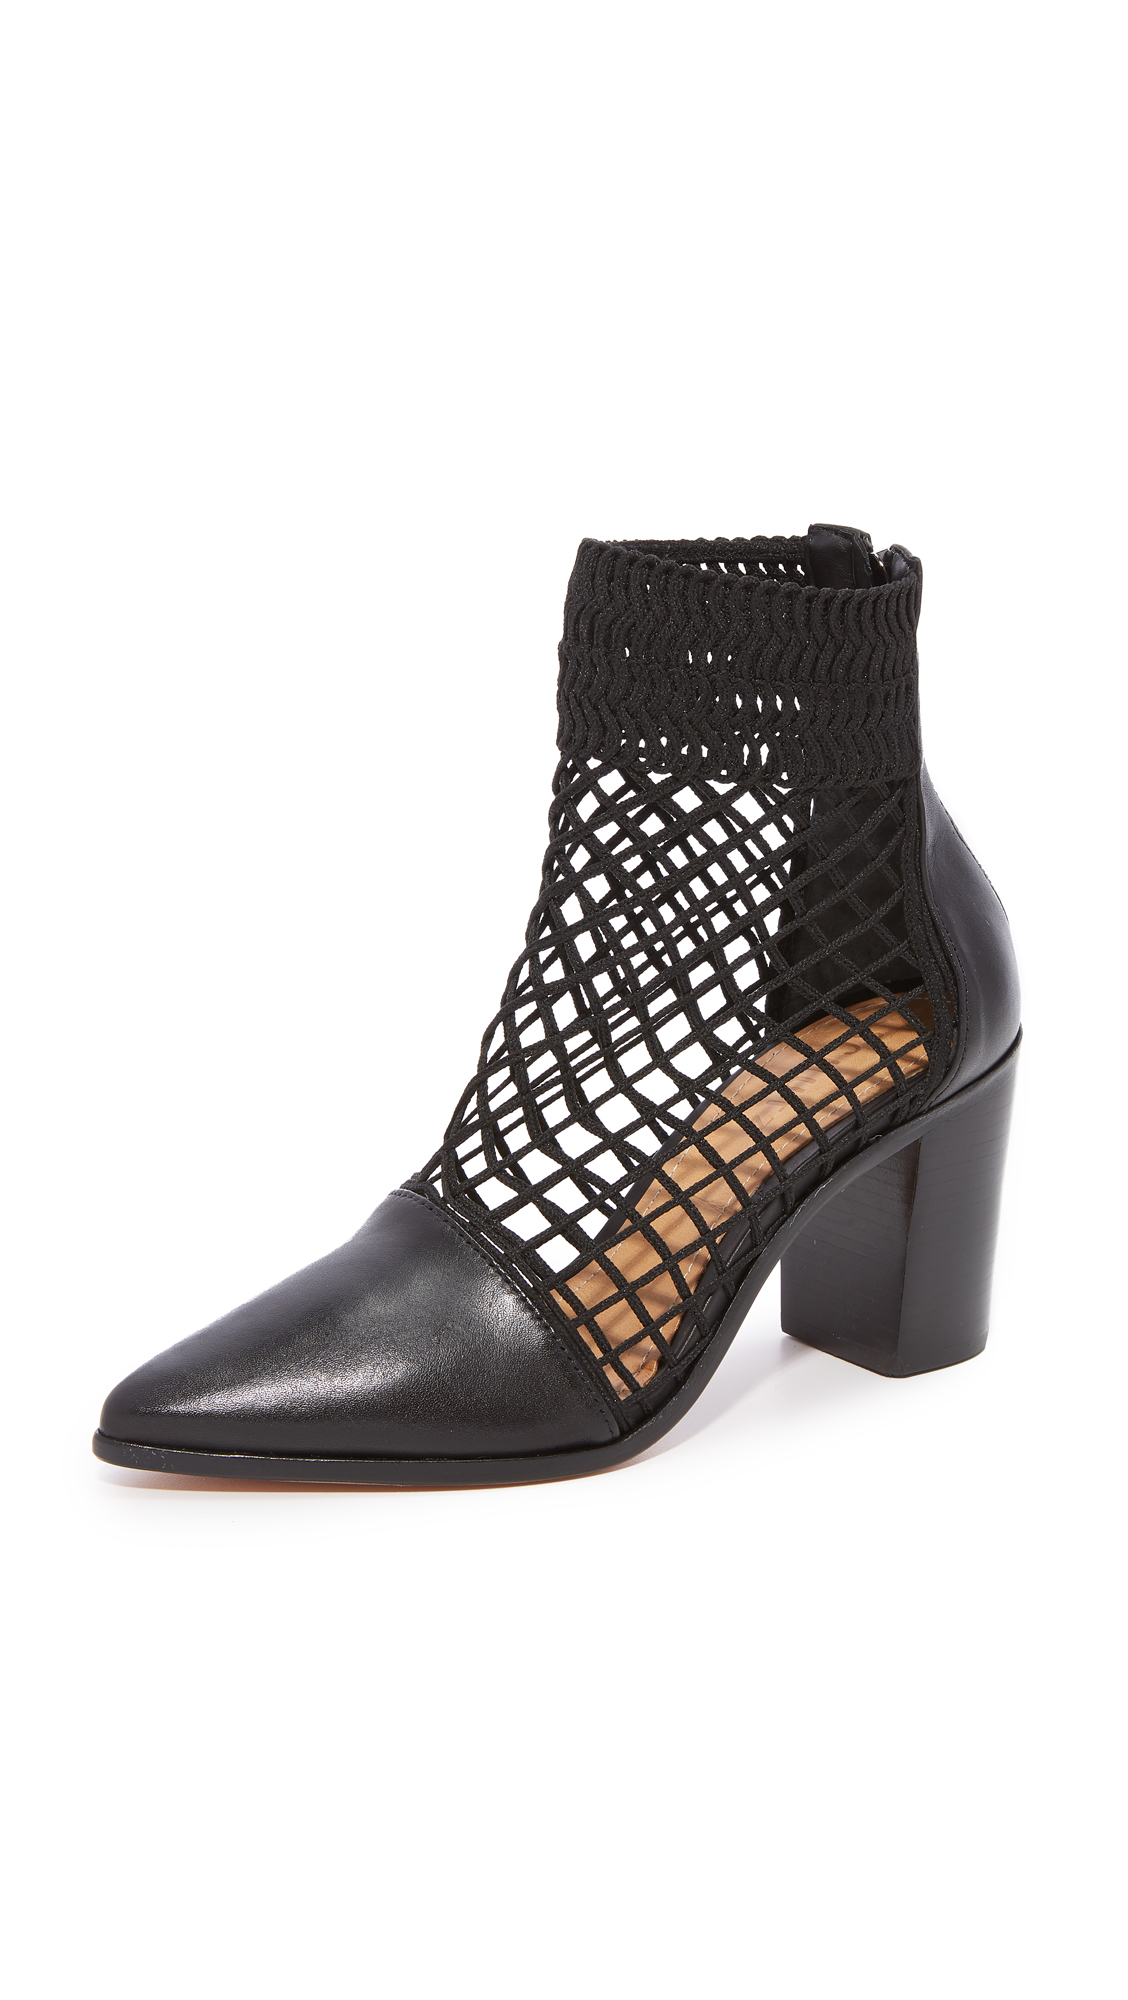 Schutz Rosmari Fishnet Booties - Black